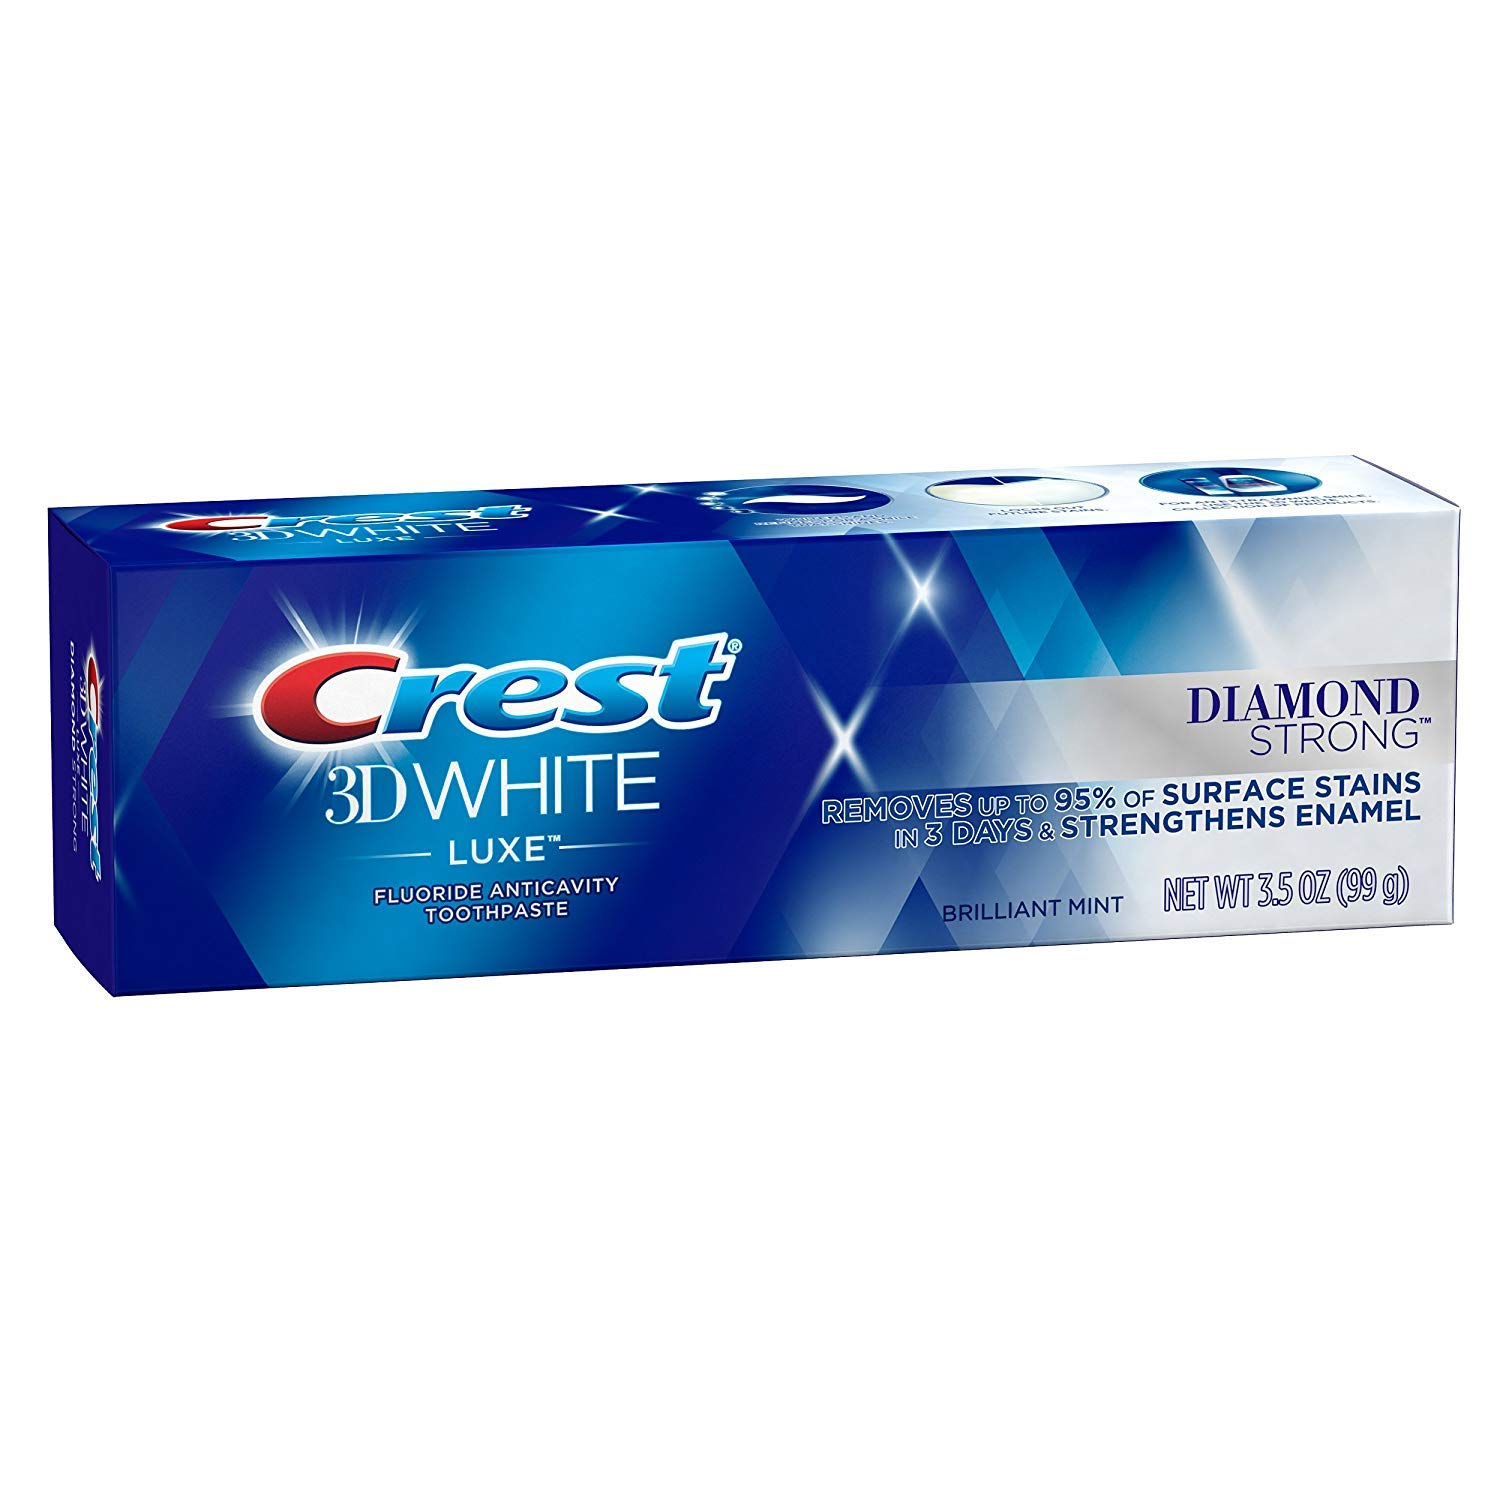 Crest 3D White Luxe Diamond Strong Toothpaste 3.5 oz (Pack of 2)